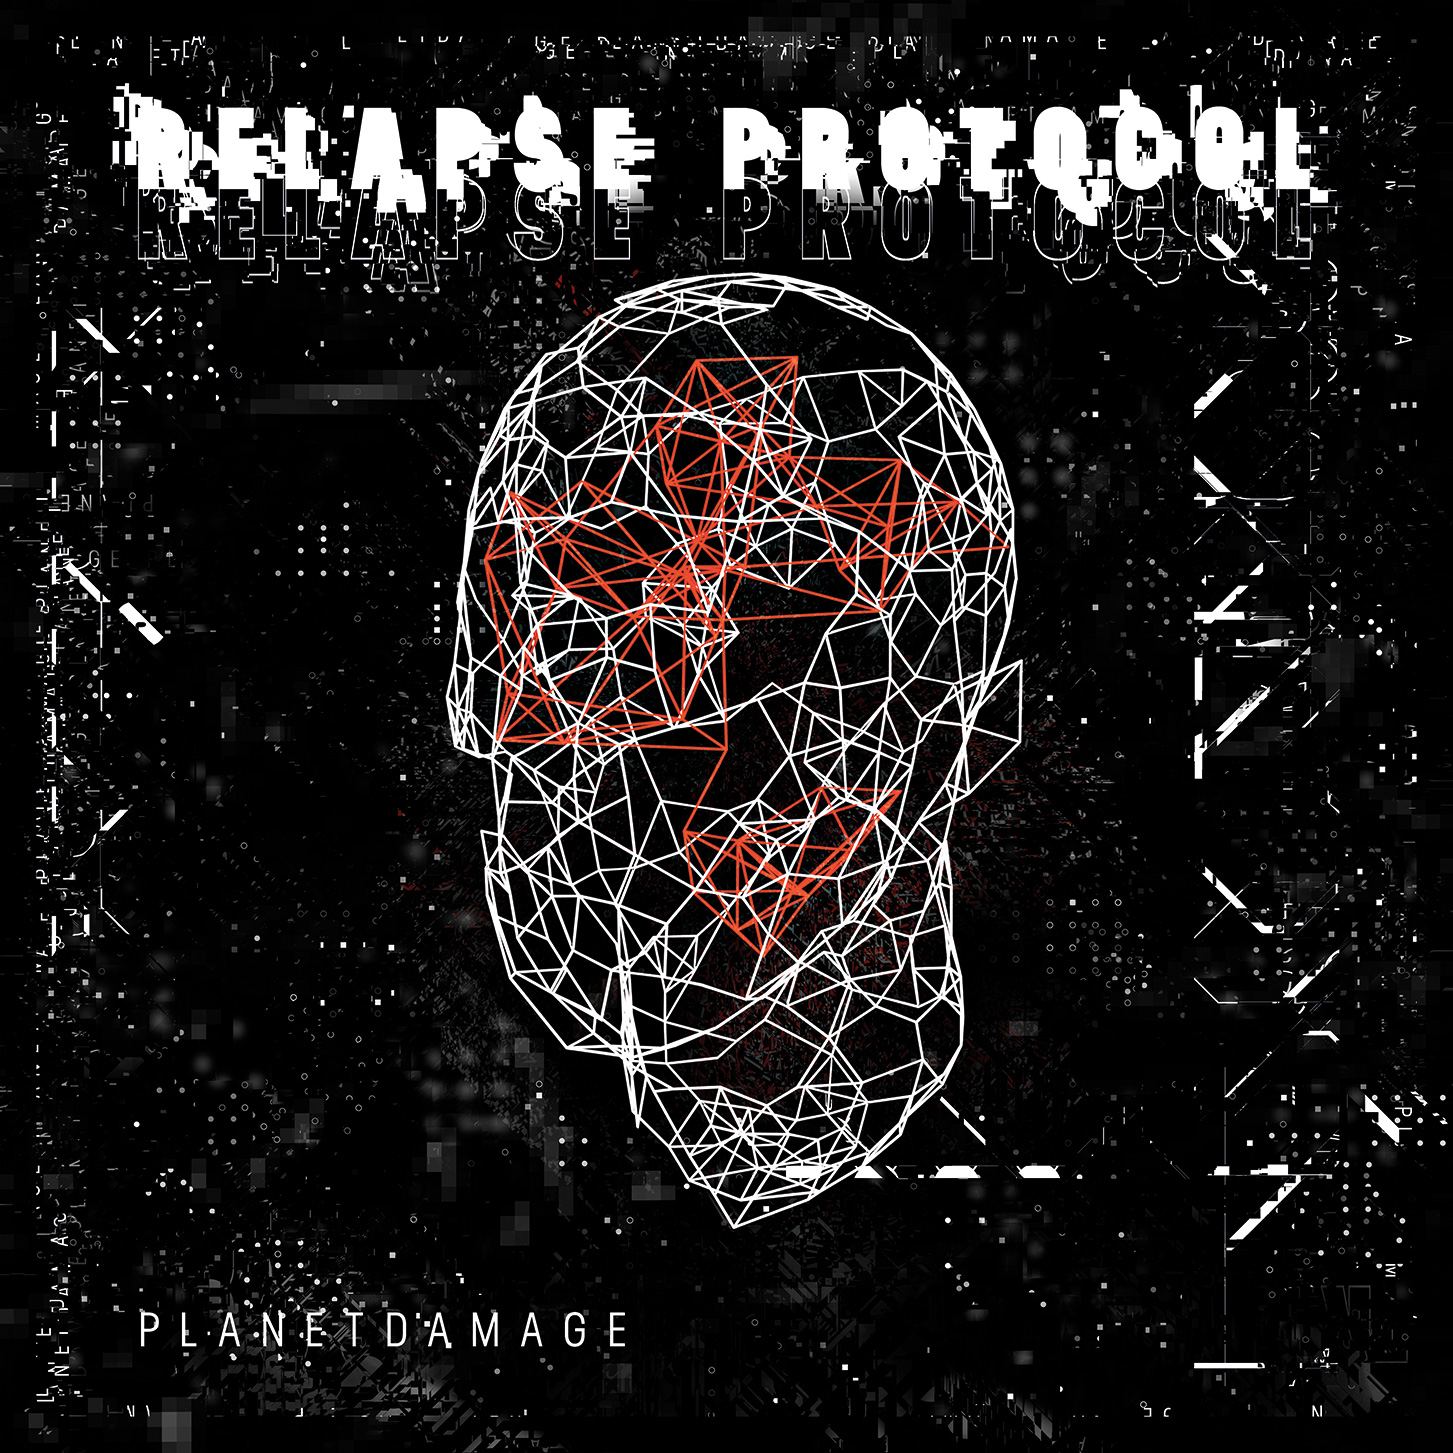 relapse_protocol_front_cover.jpg